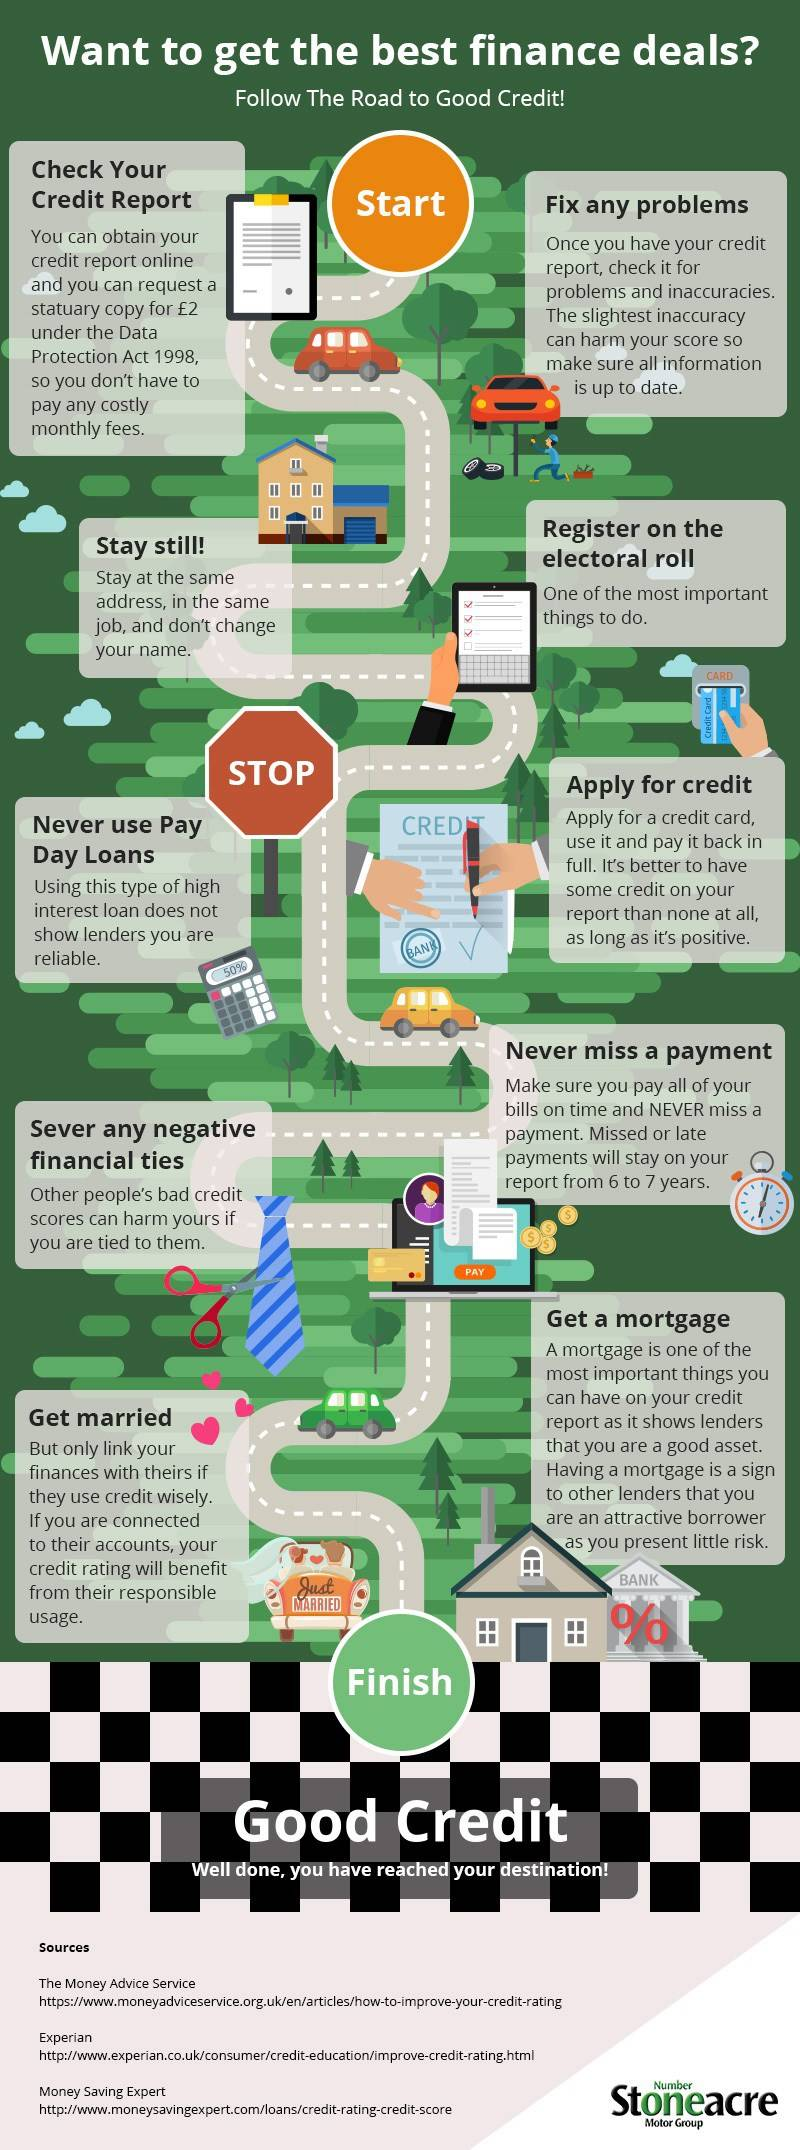 Steps to help improve your credit rating